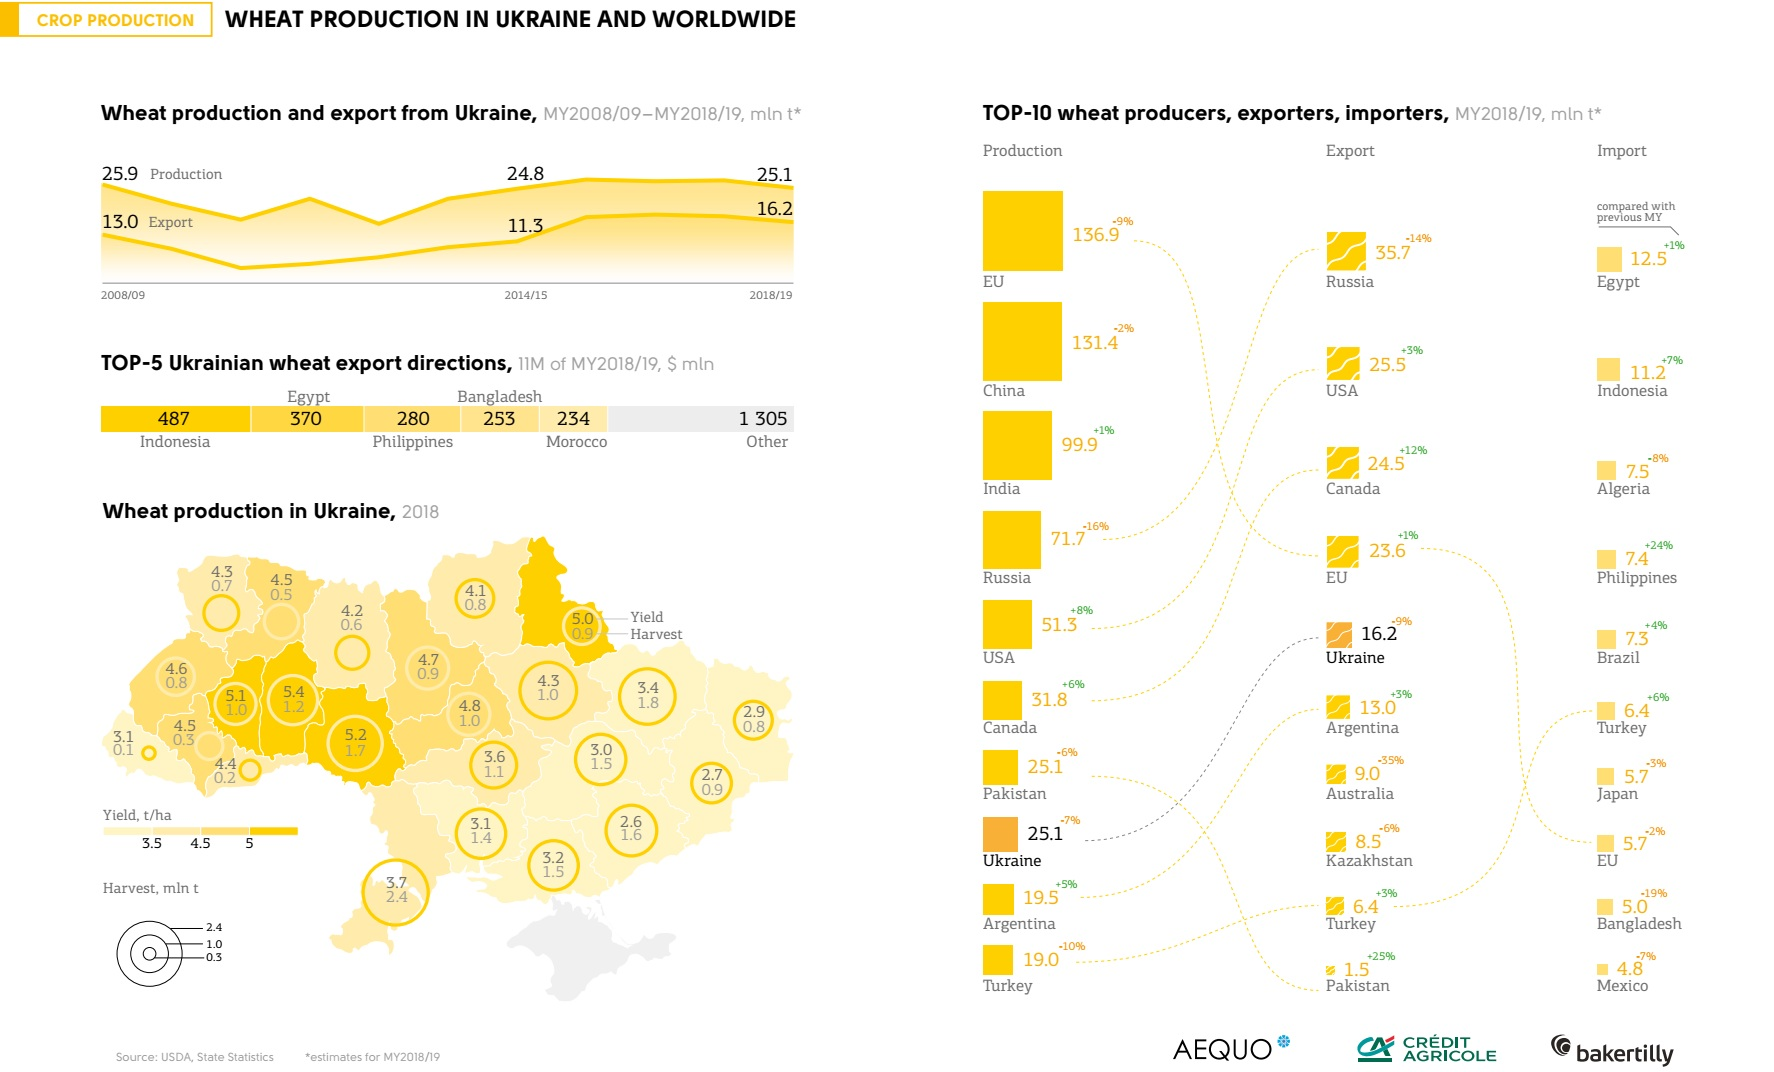 Wheat production in Ukraine and worldwide (click for full resolution)